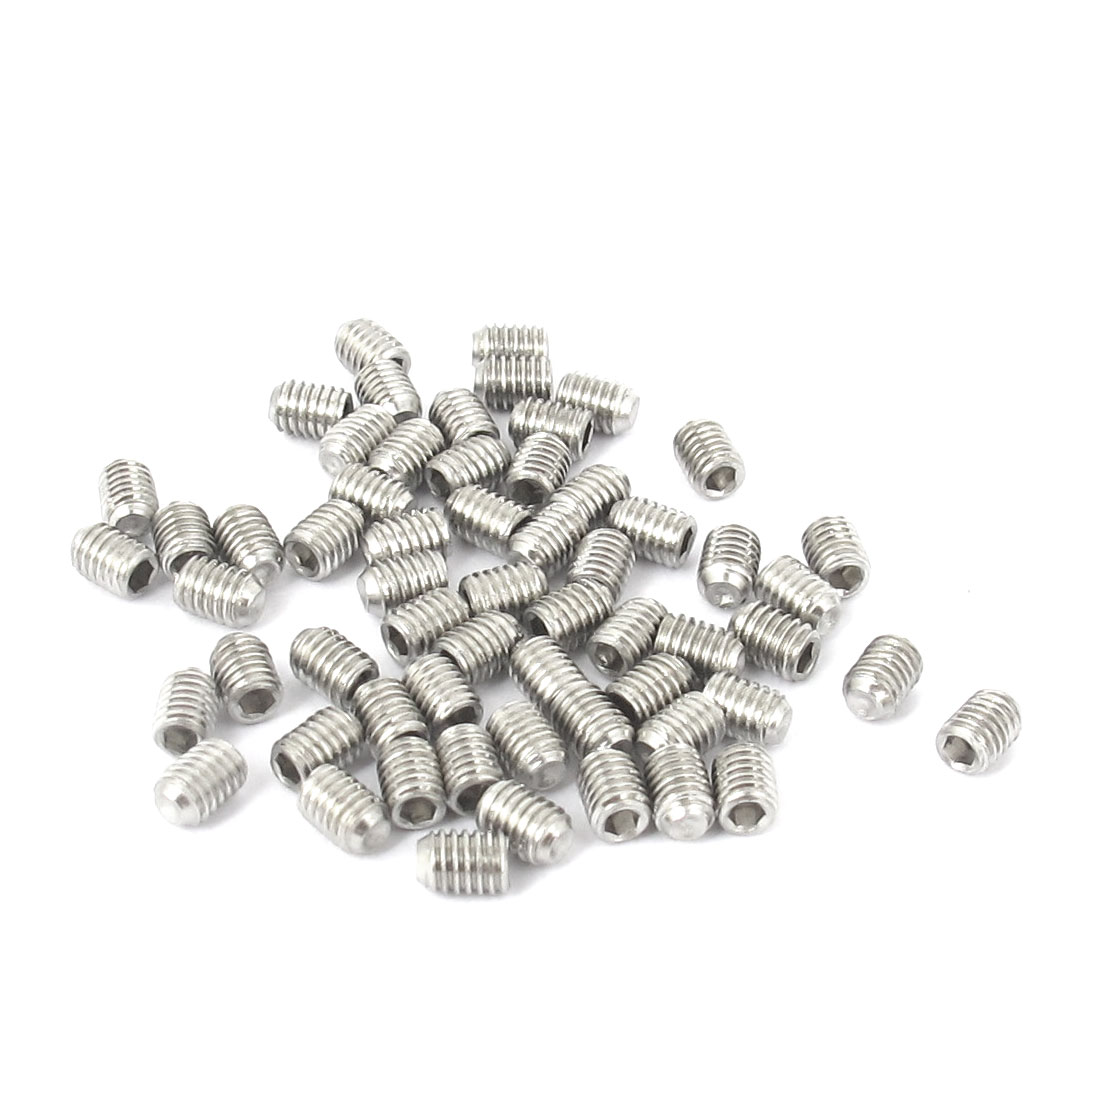 M3x4mm Stainless Steel Hex Socket Set Cap Point Grub Screws Silver Tone 50pcs